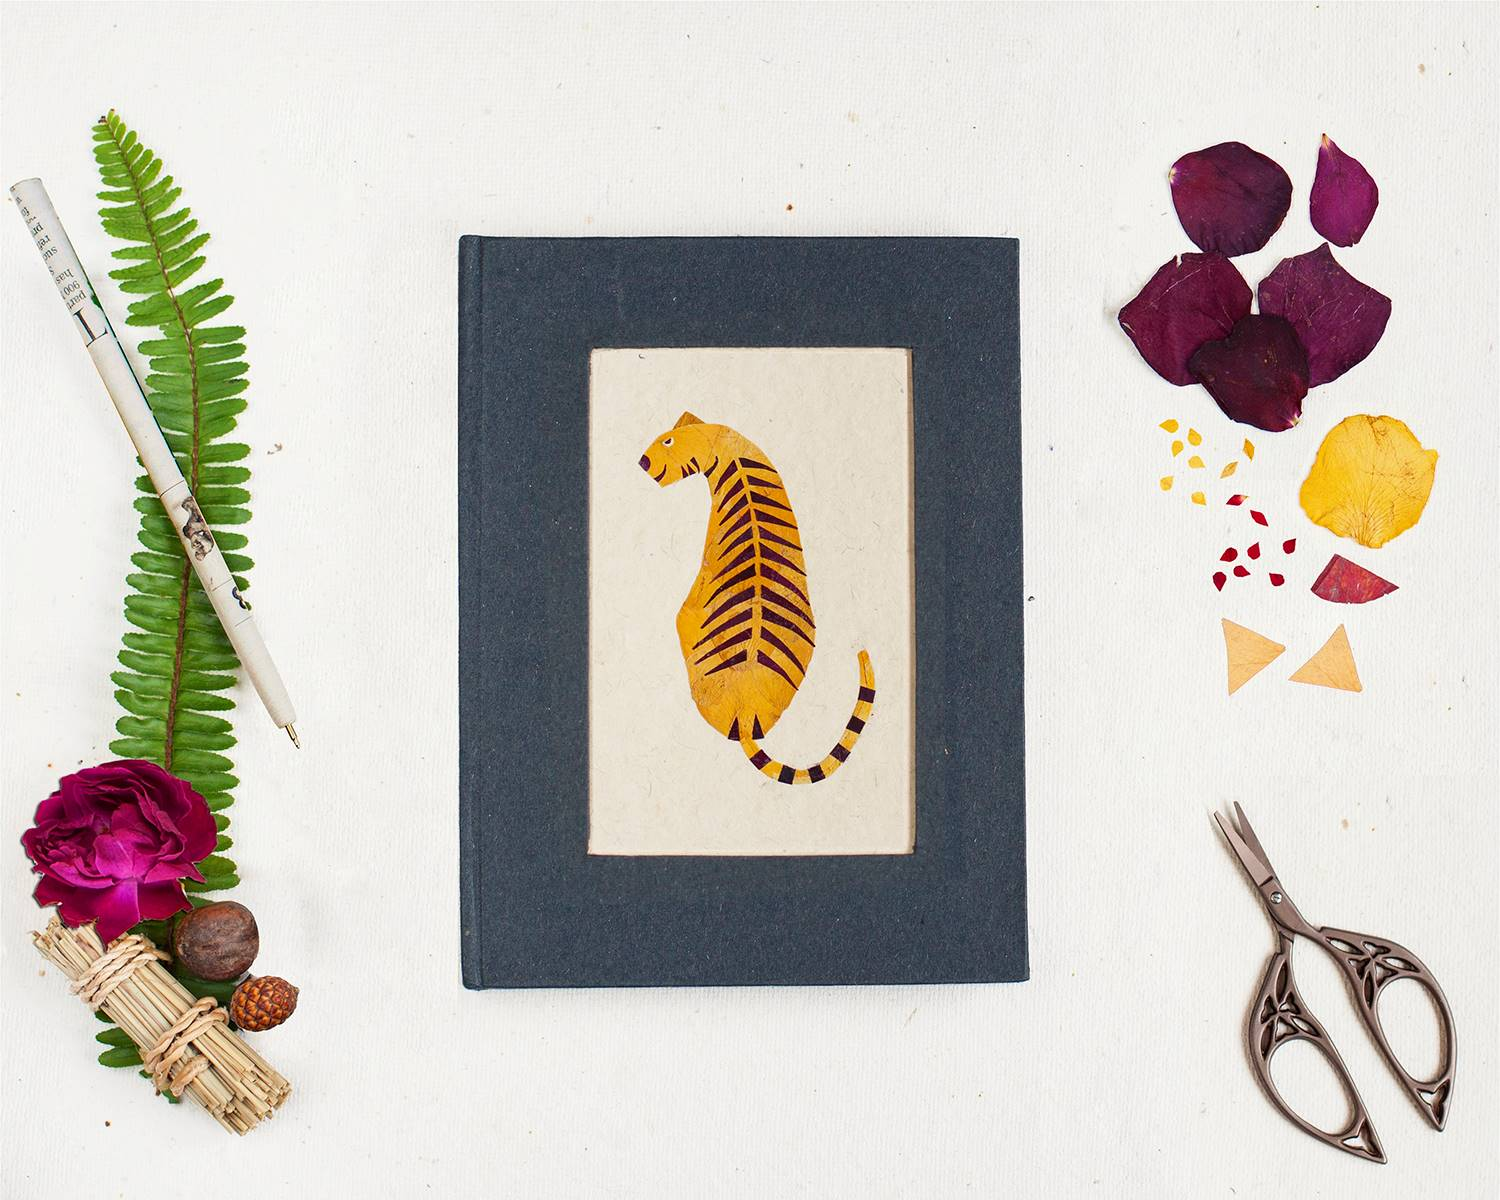 Floral Diary with Tiger Motif Handmade by Women Artisans